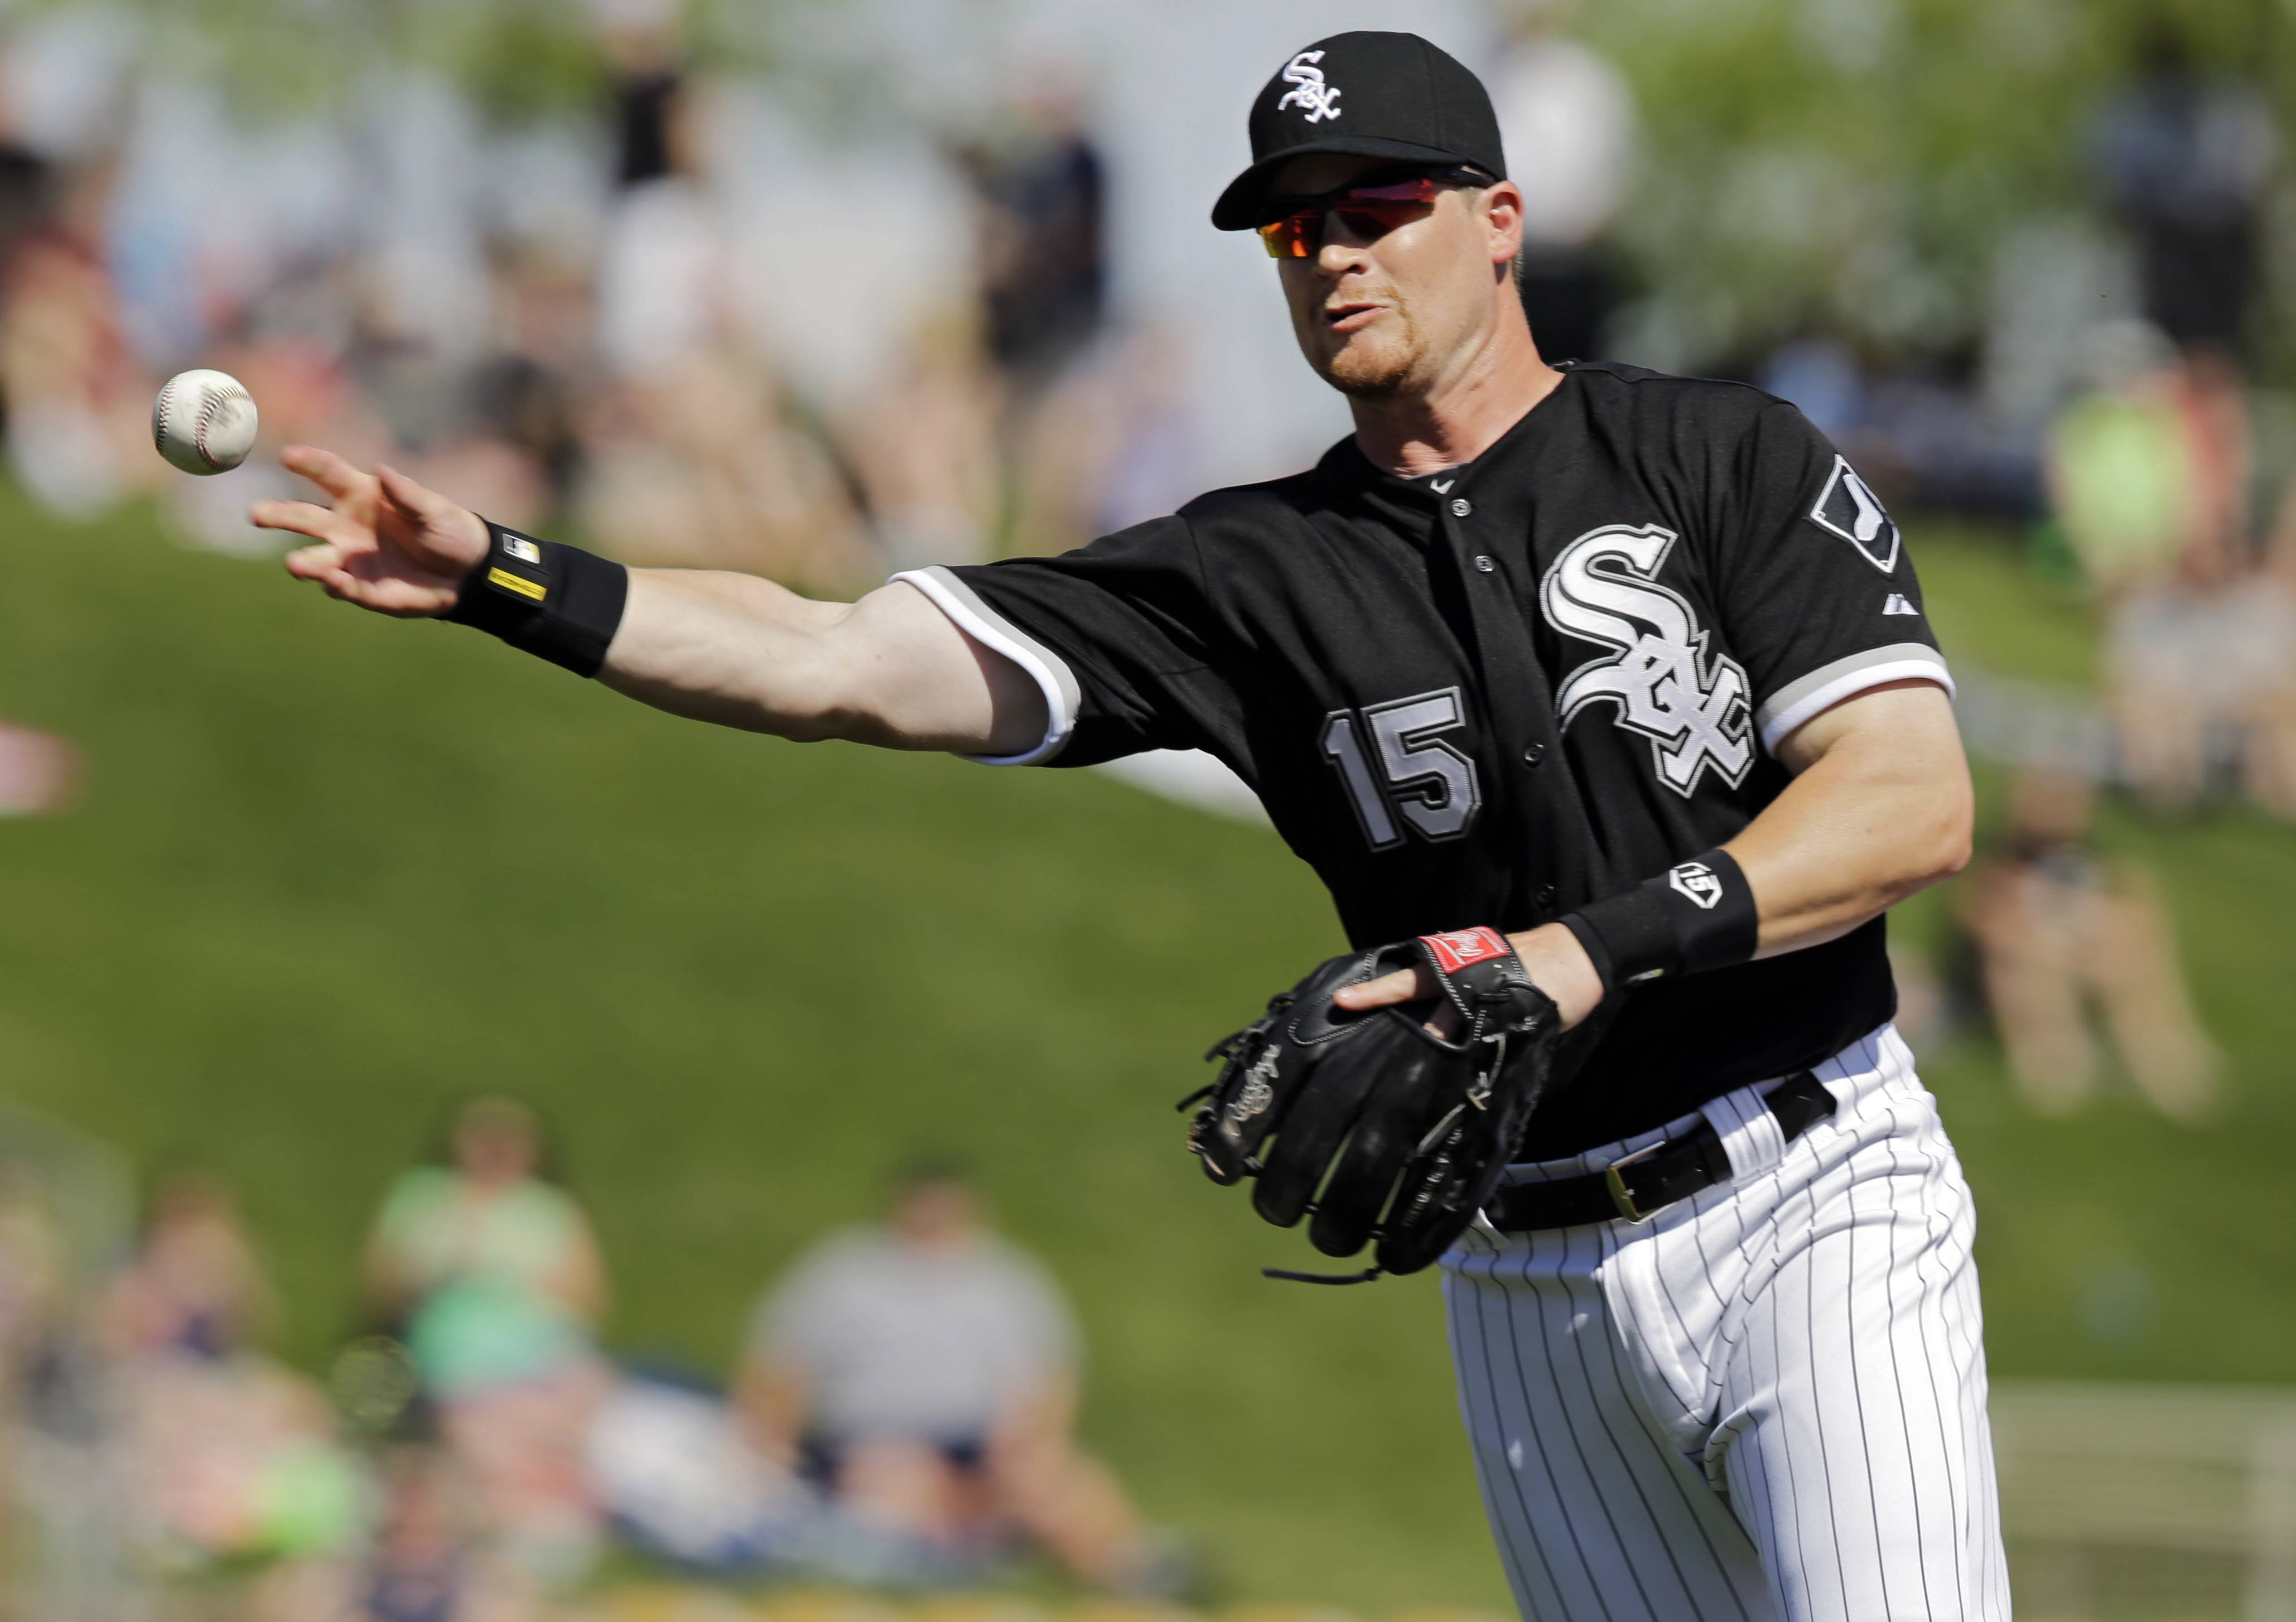 White Sox second baseman Gordon Beckham throws out a runner at first Friday, when he strained his left oblique on a swing after the game.